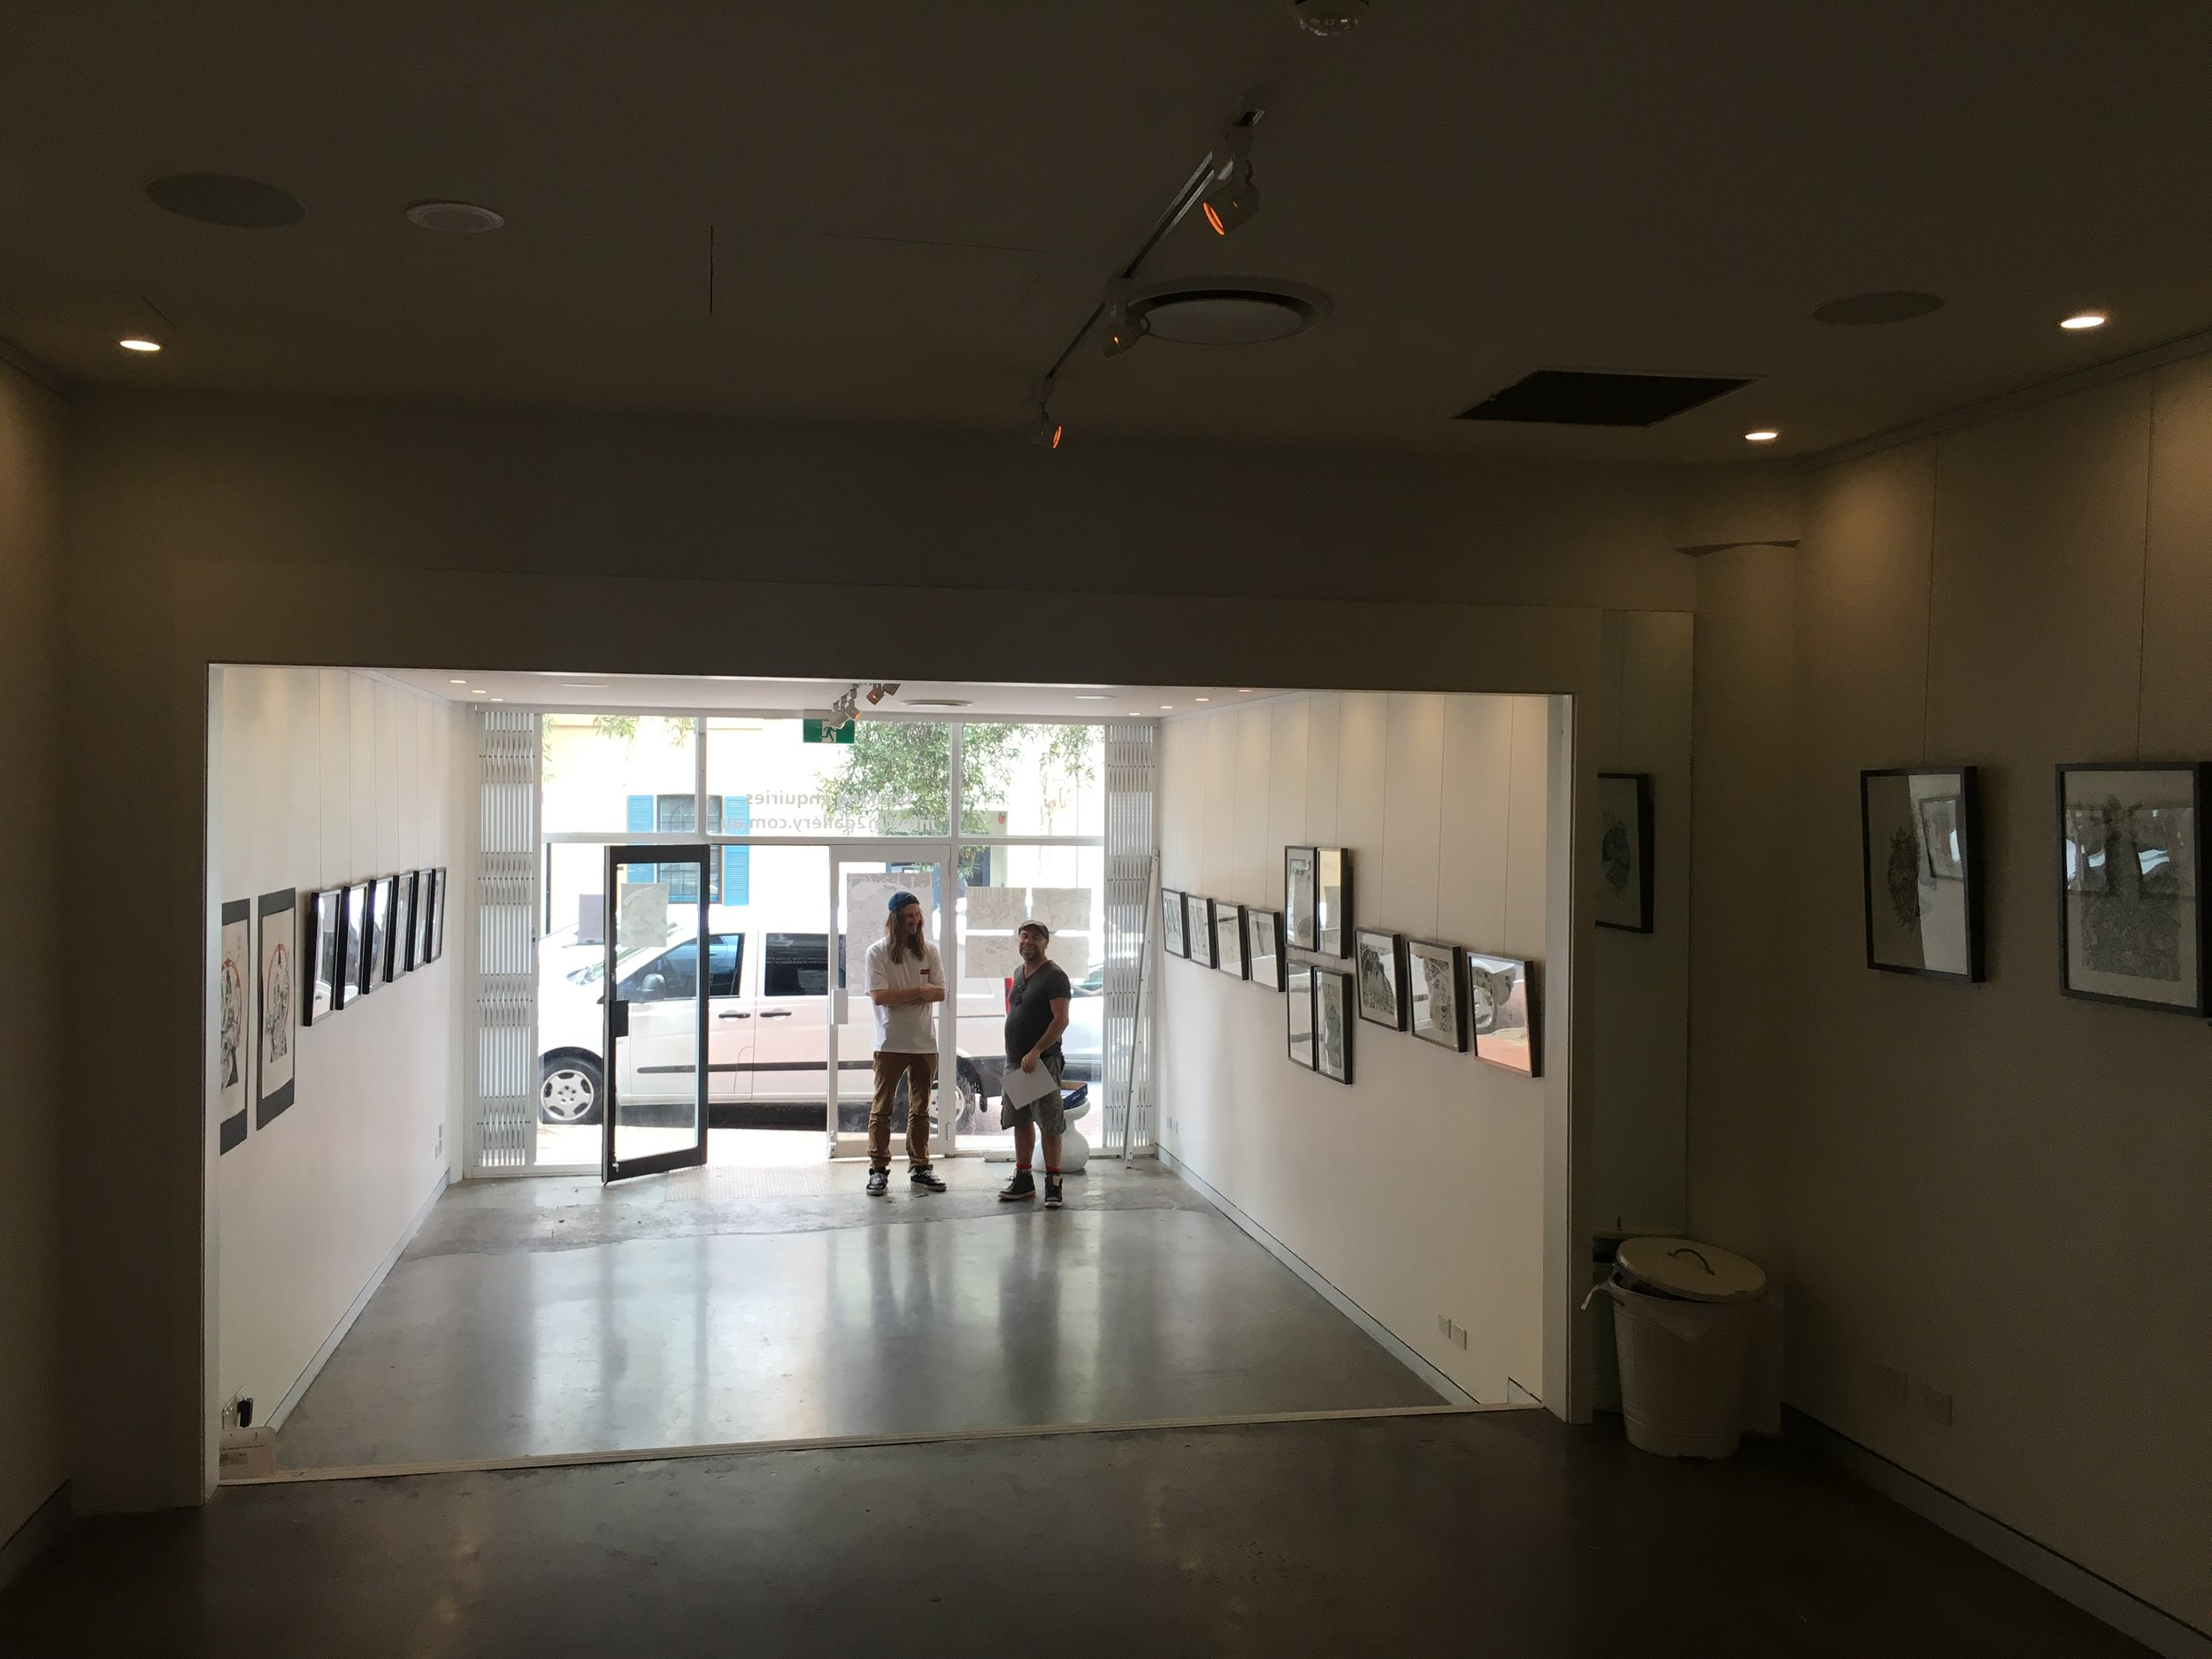 Gallery for Guy's exhibition